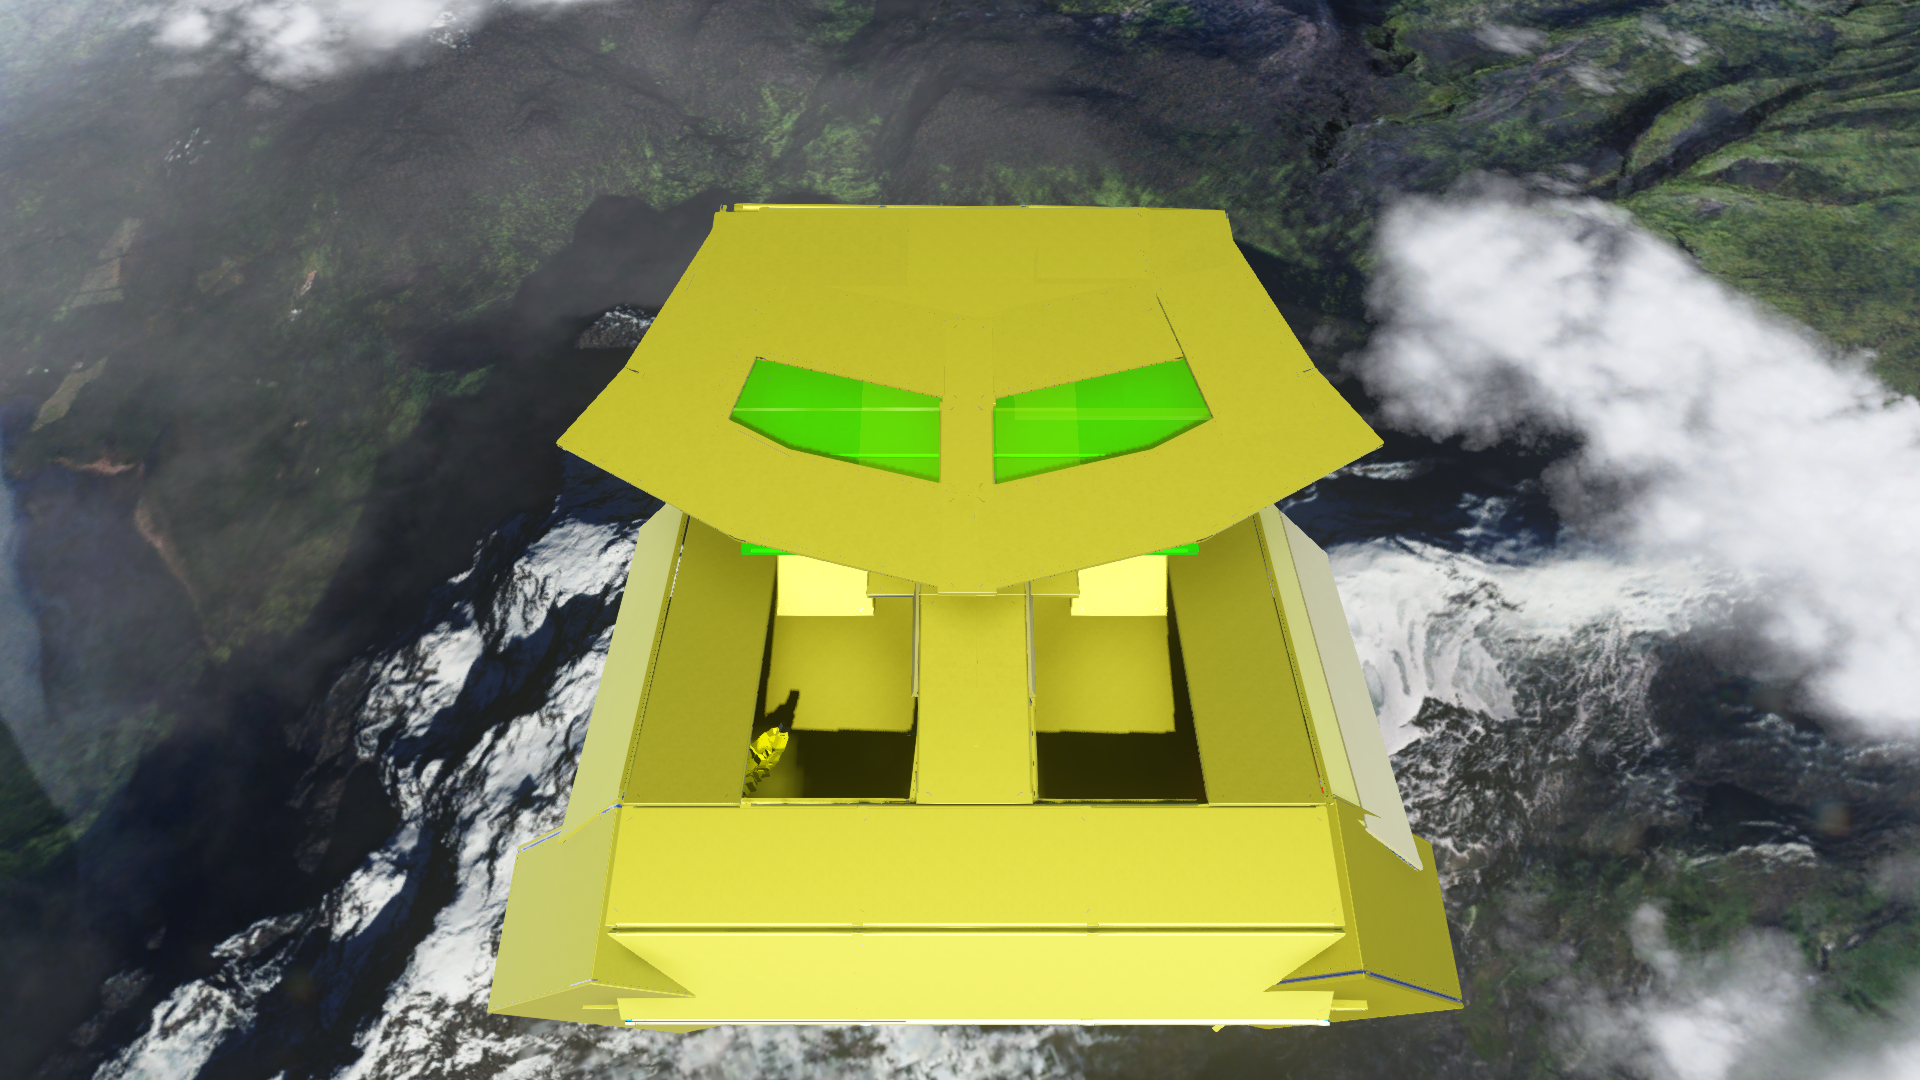 The Miru as a Halo 5 Forge Map - Artwork - The TTV Message